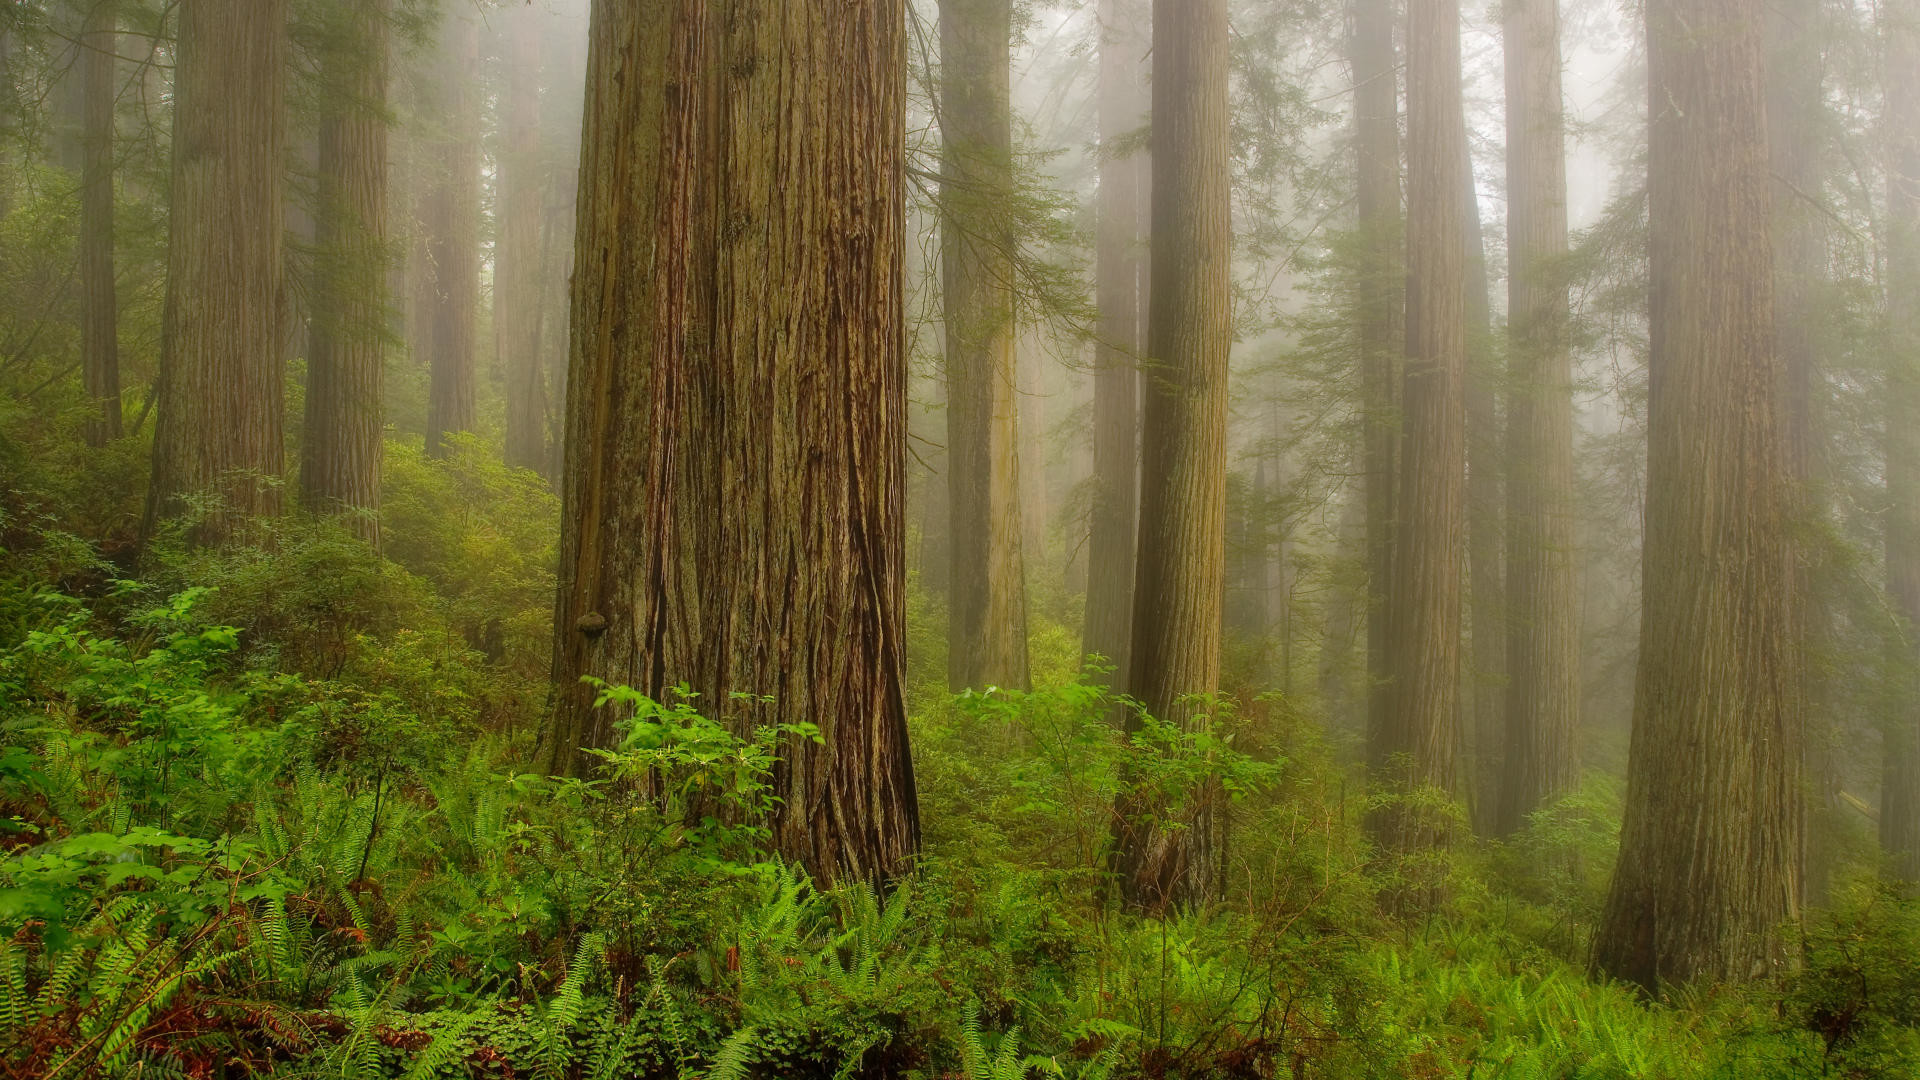 1920x1080 Download Background - Misty Morning, Redwoods National Park, California -  Free Cool Backgrounds and Wallpapers for your Desktop Or Laptop.